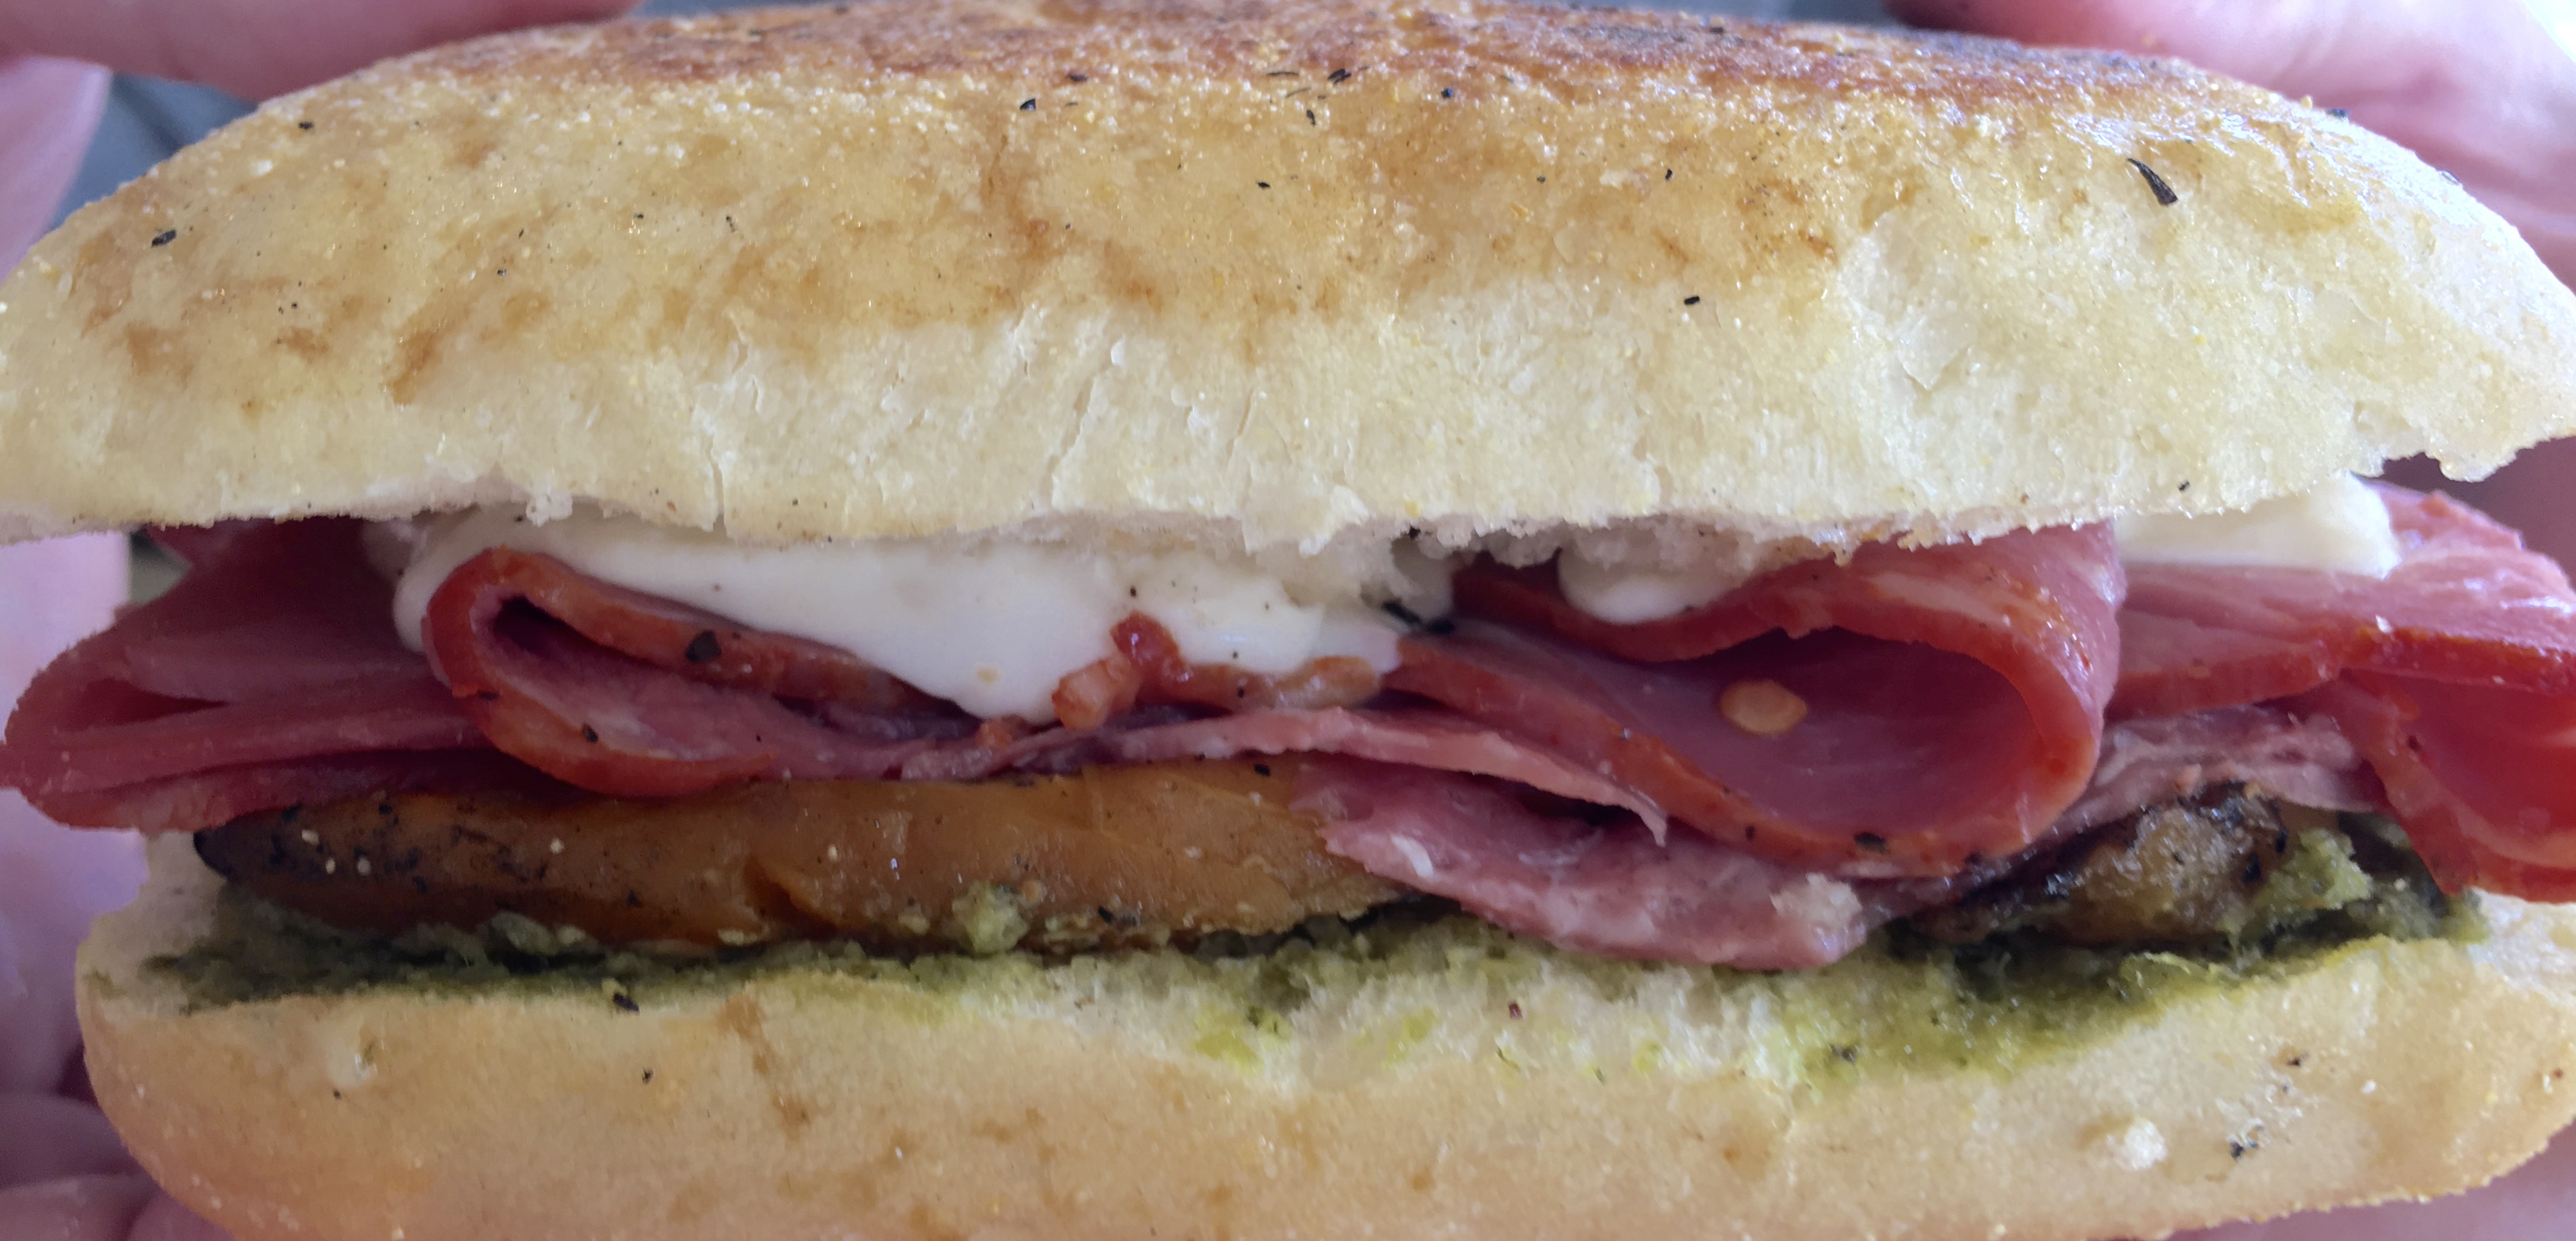 The Italian Sandwich at Brooklyn South